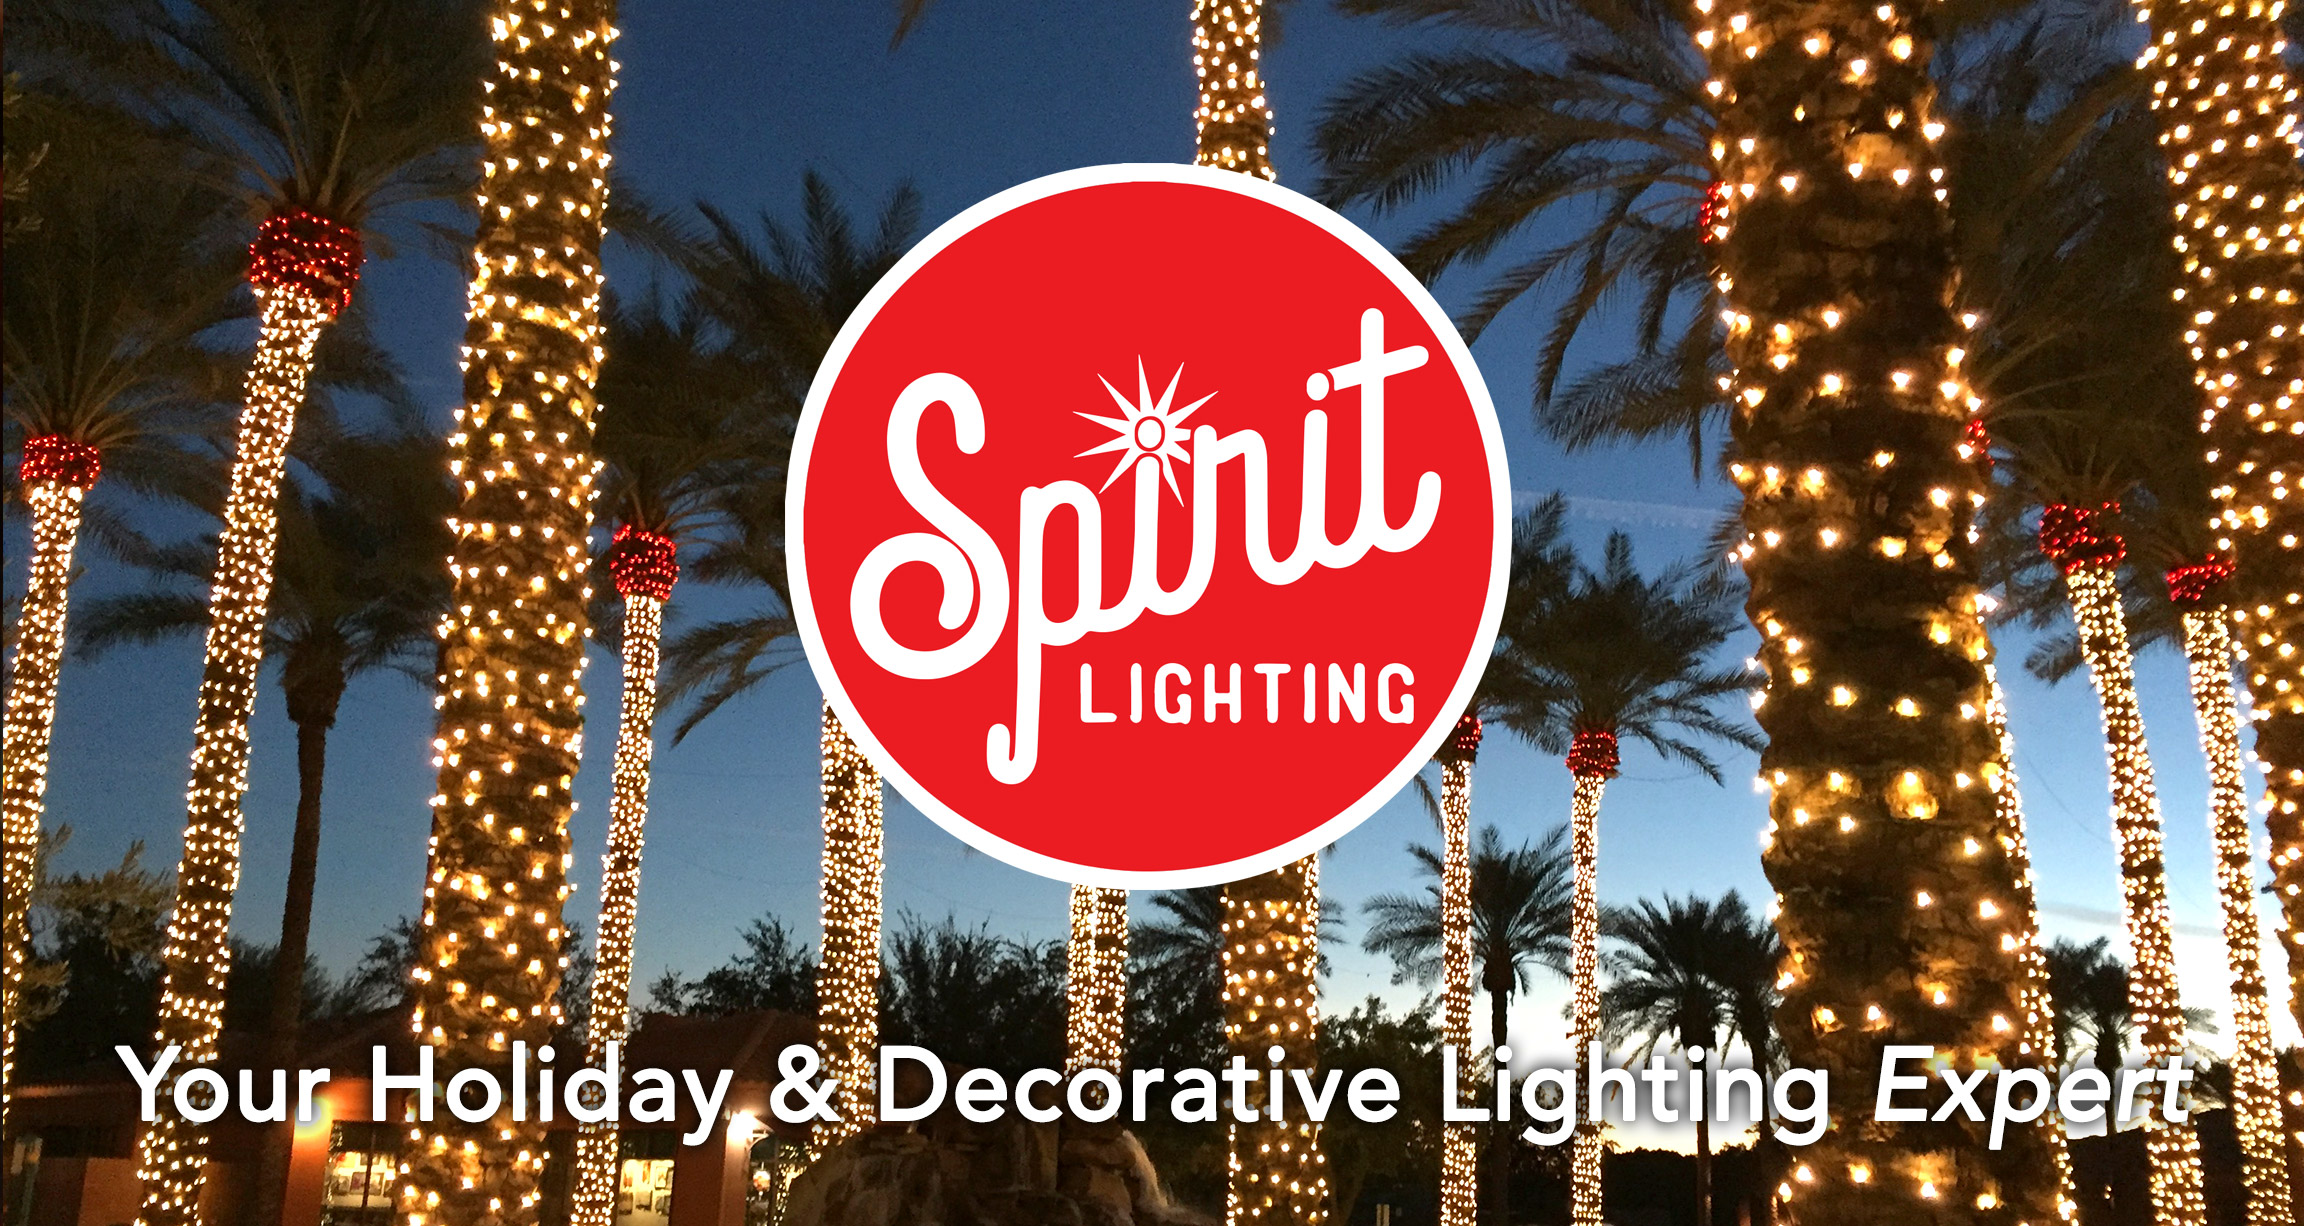 spirit lighting is a full service holiday decorating company in phoenix arizona spirit lighting - Christmas Light Decorating Service